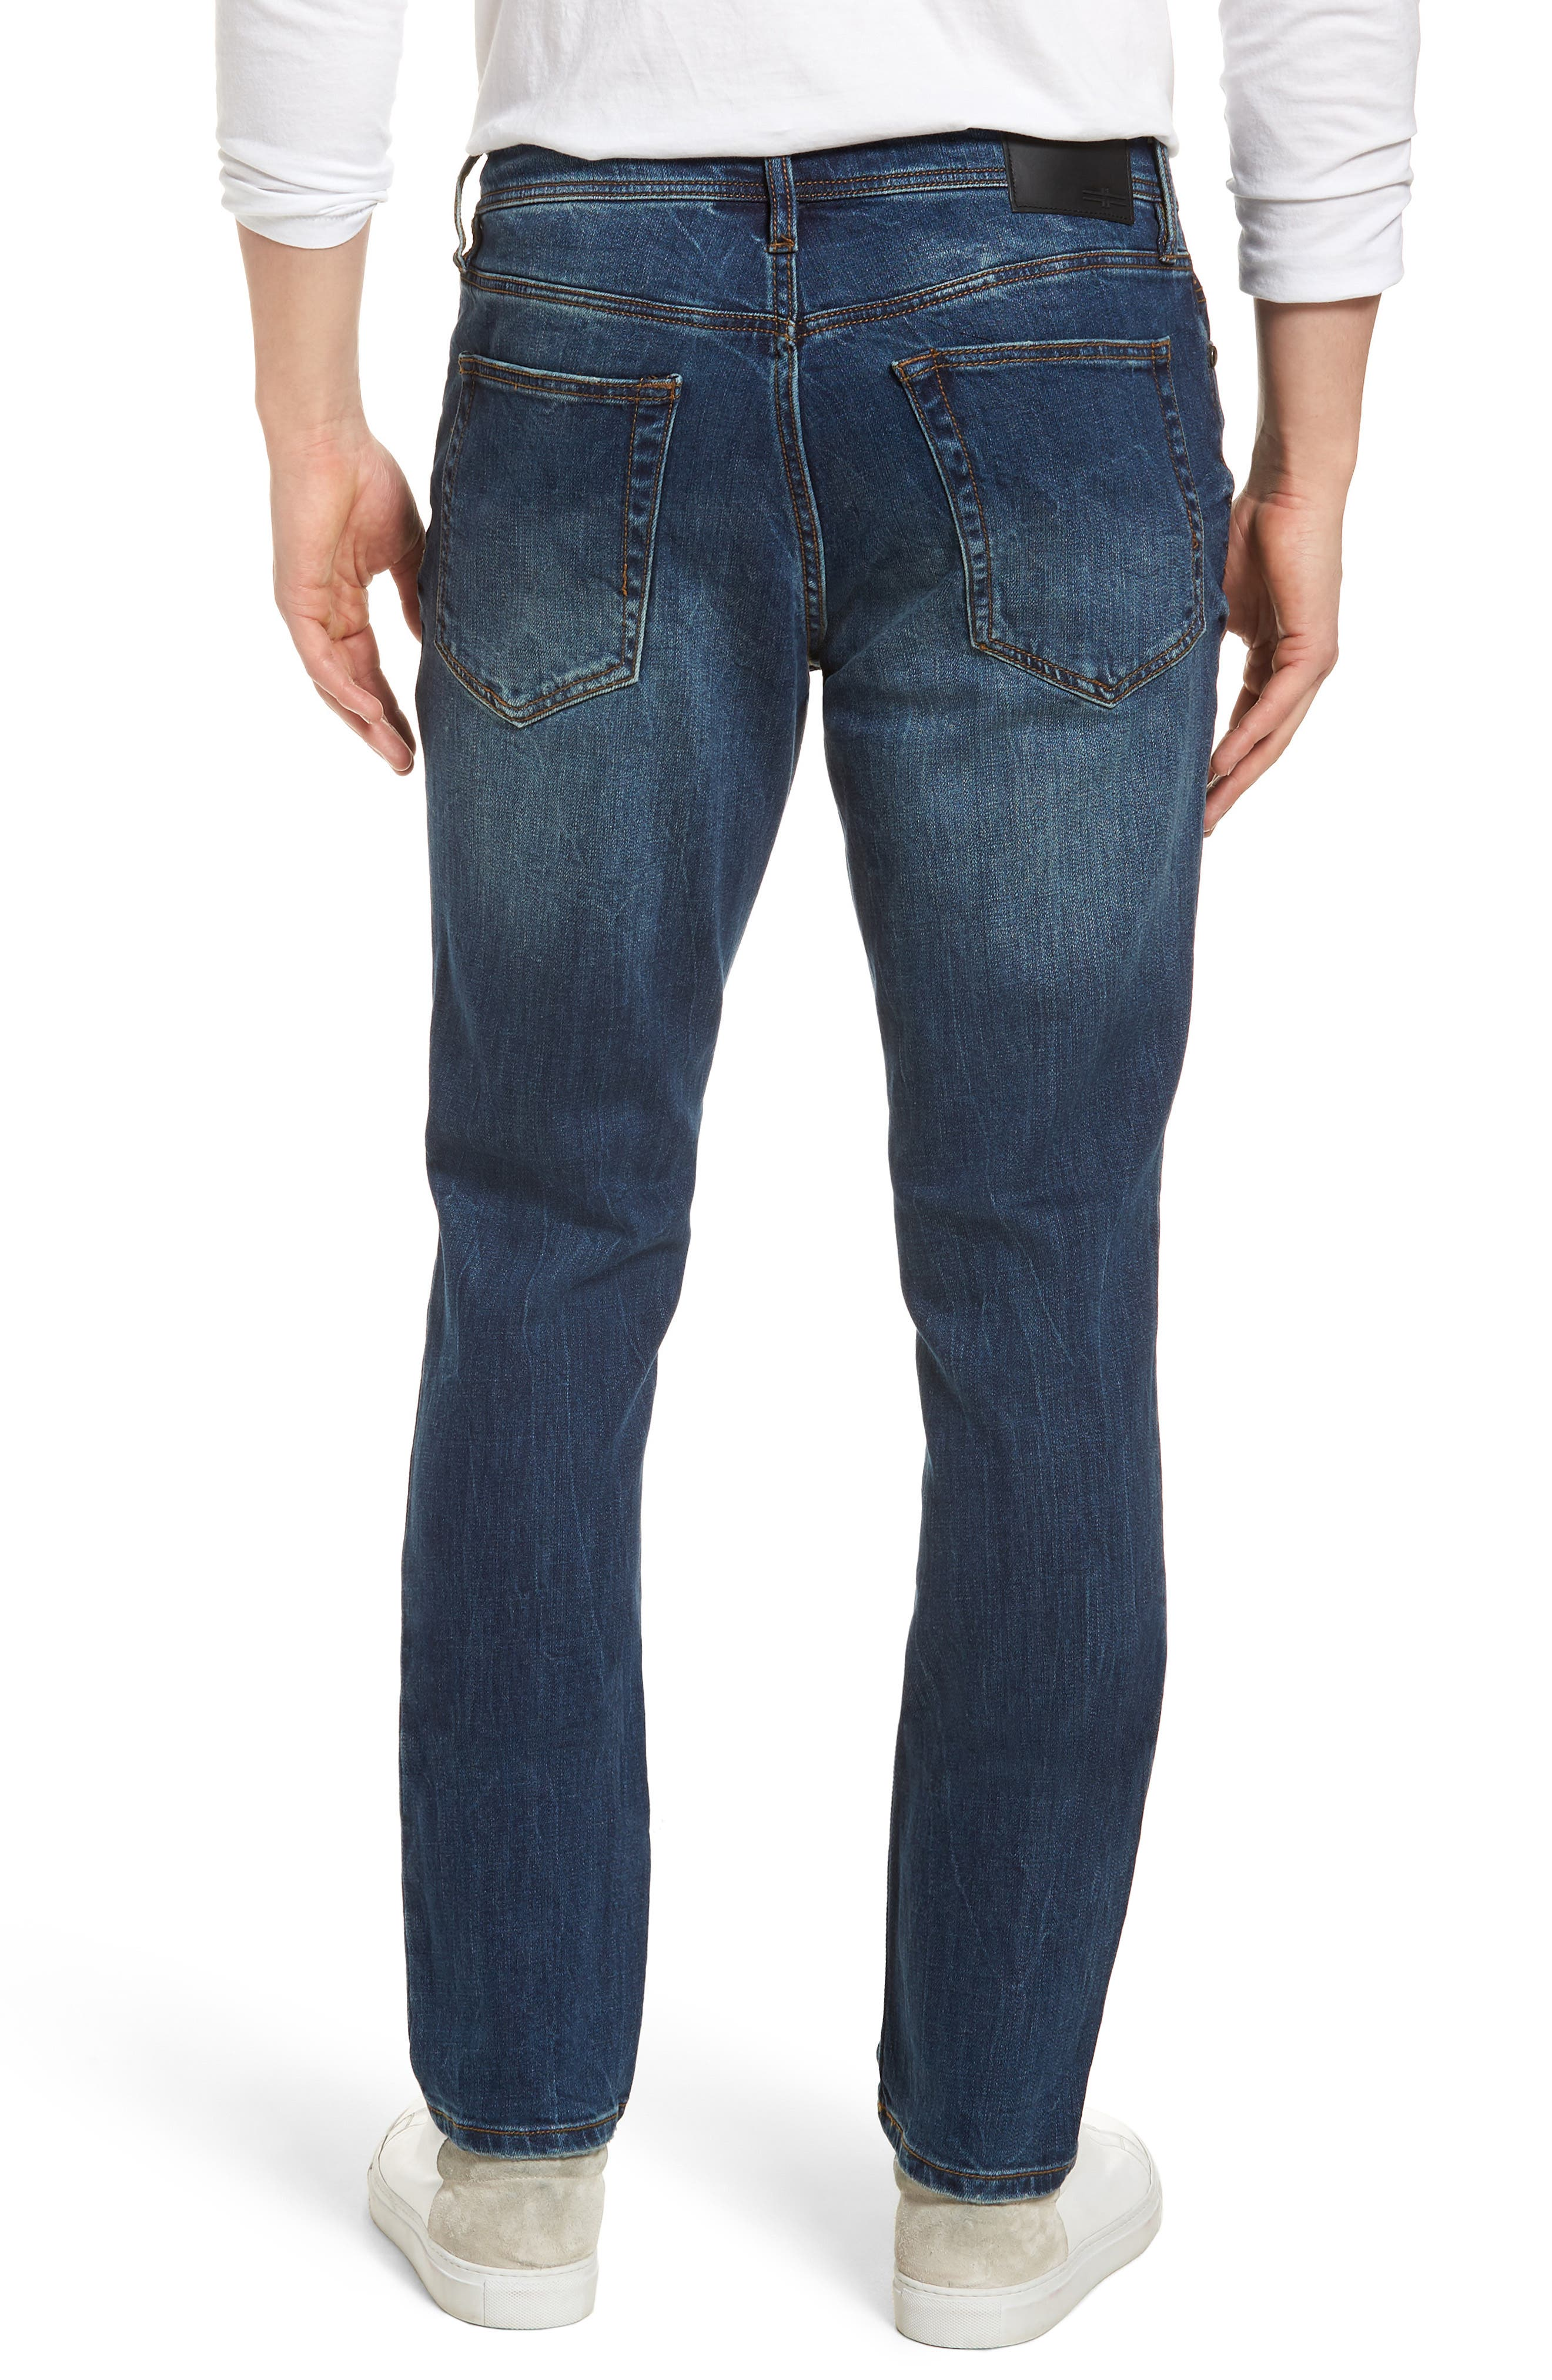 Jeans Co. Kingston Slim Straight Leg Jeans,                             Alternate thumbnail 2, color,                             ODESSA VINTAGE DARK